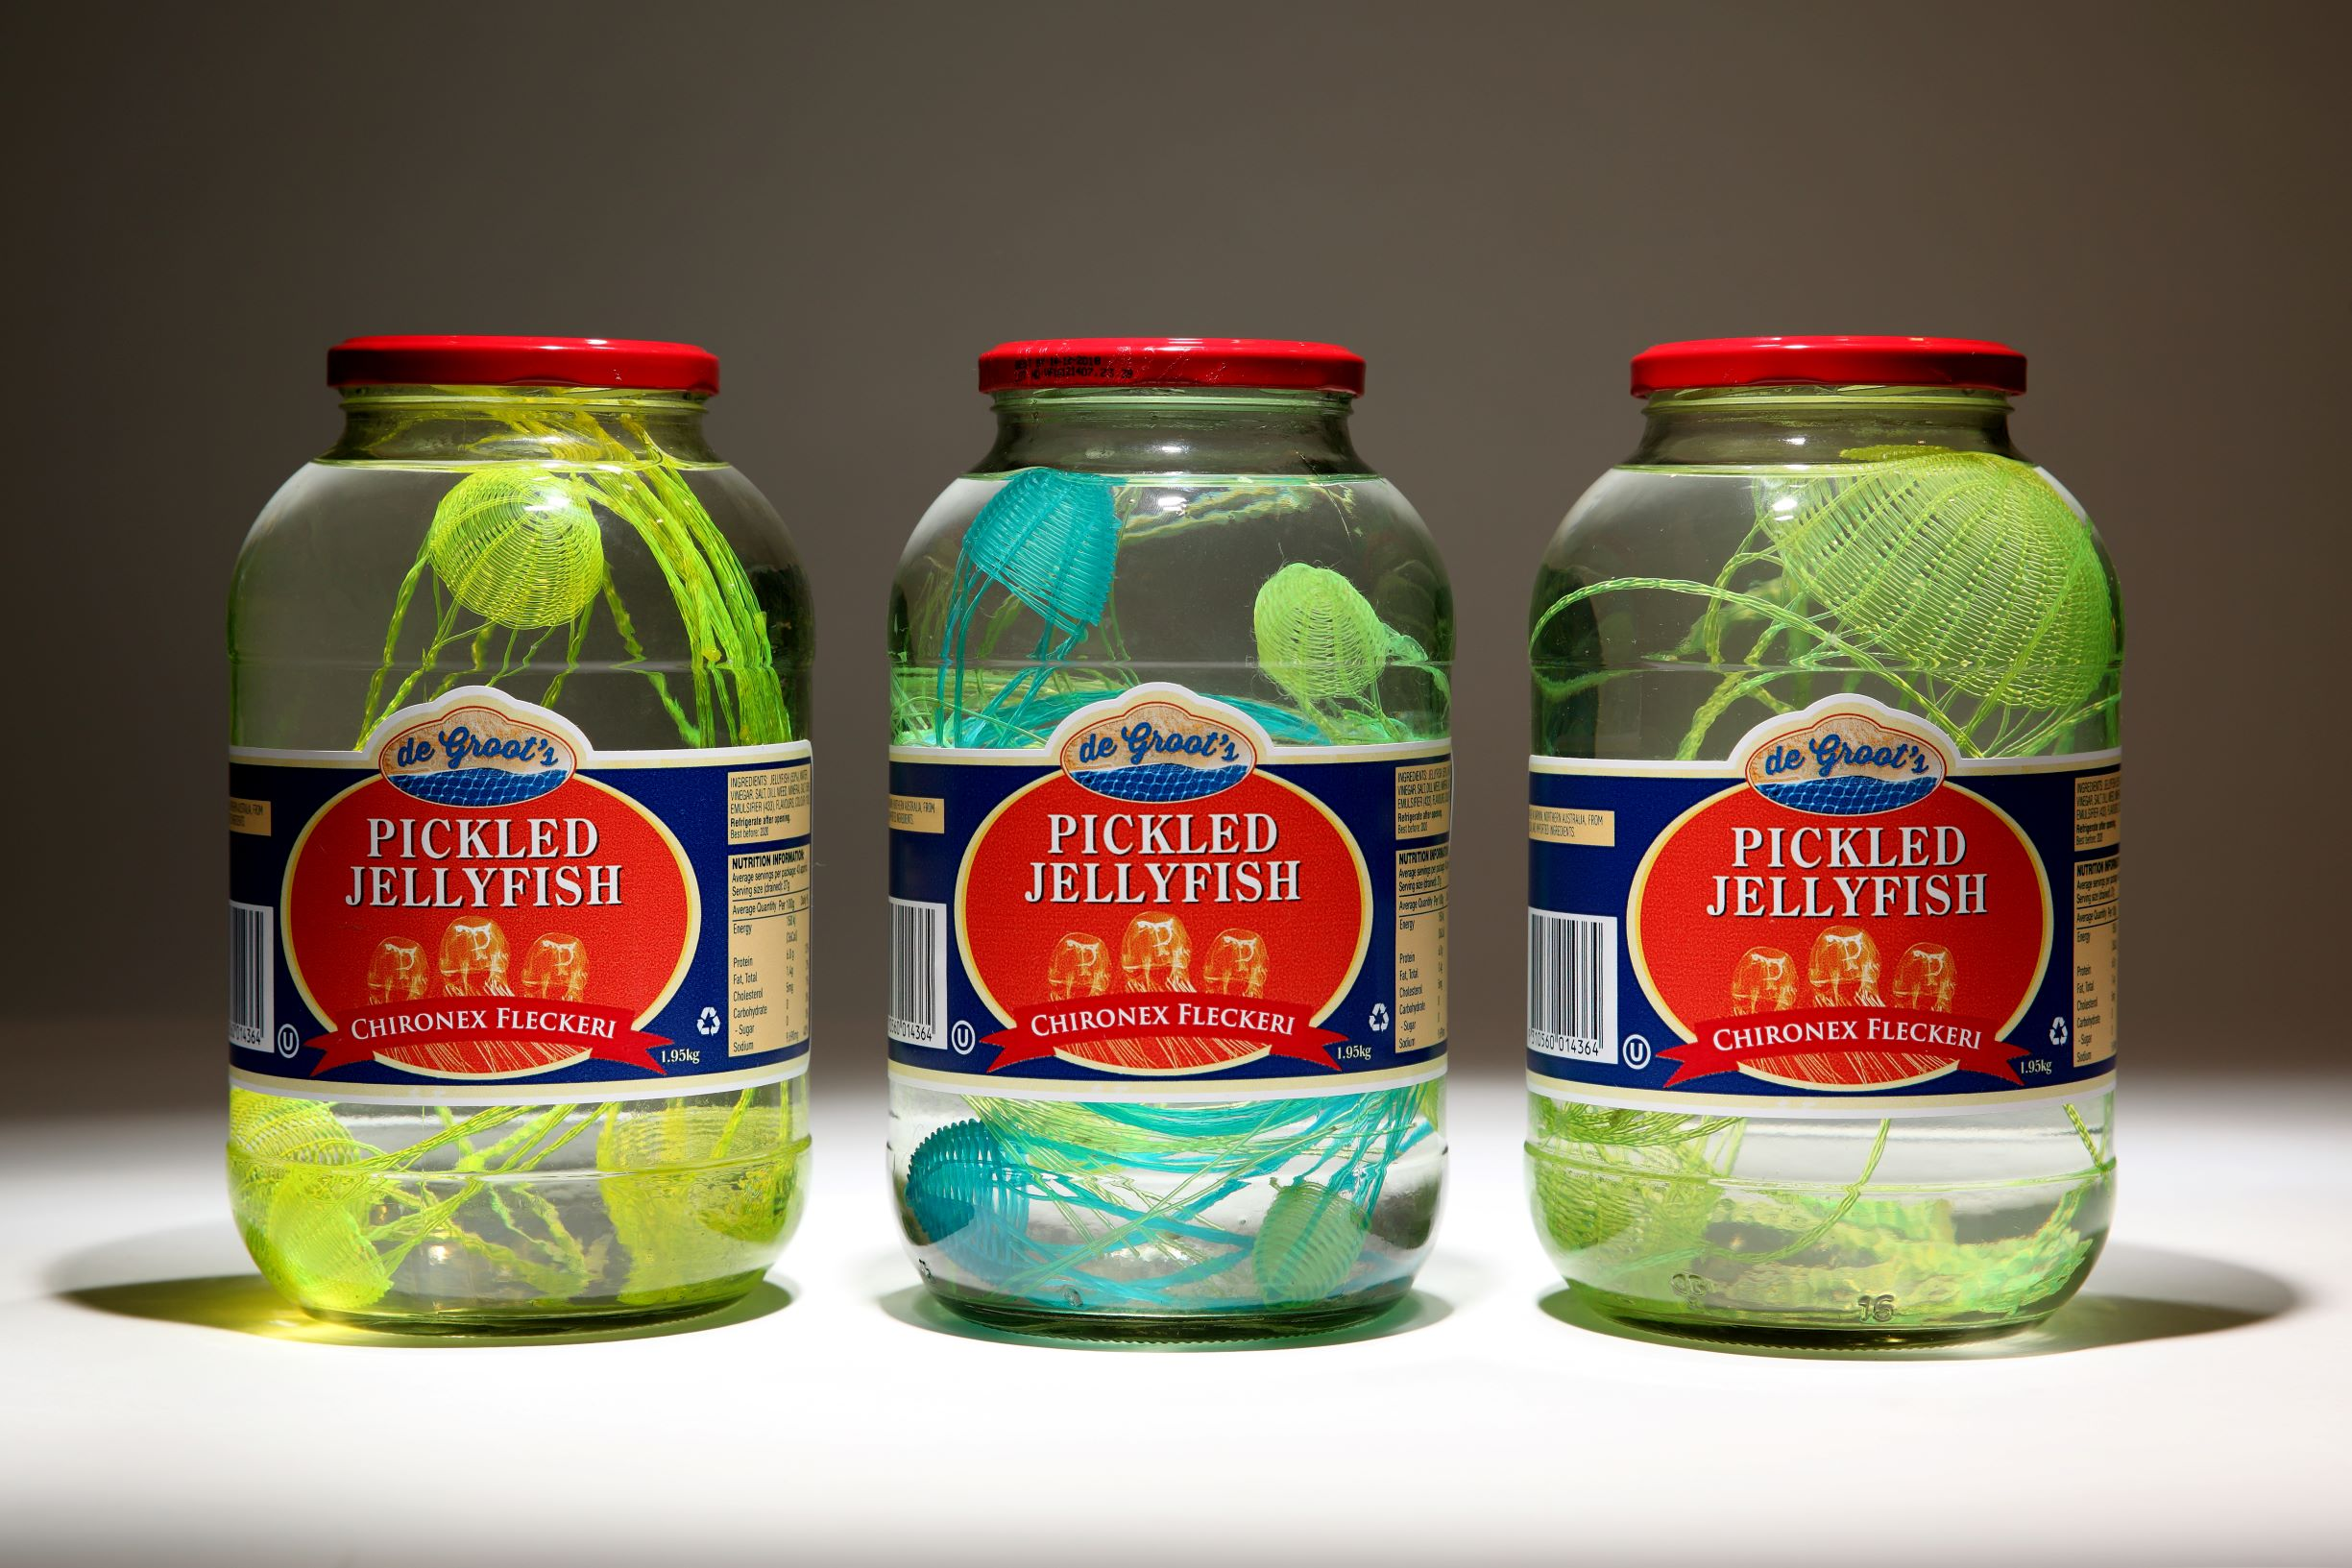 The Jellyfish Pickle